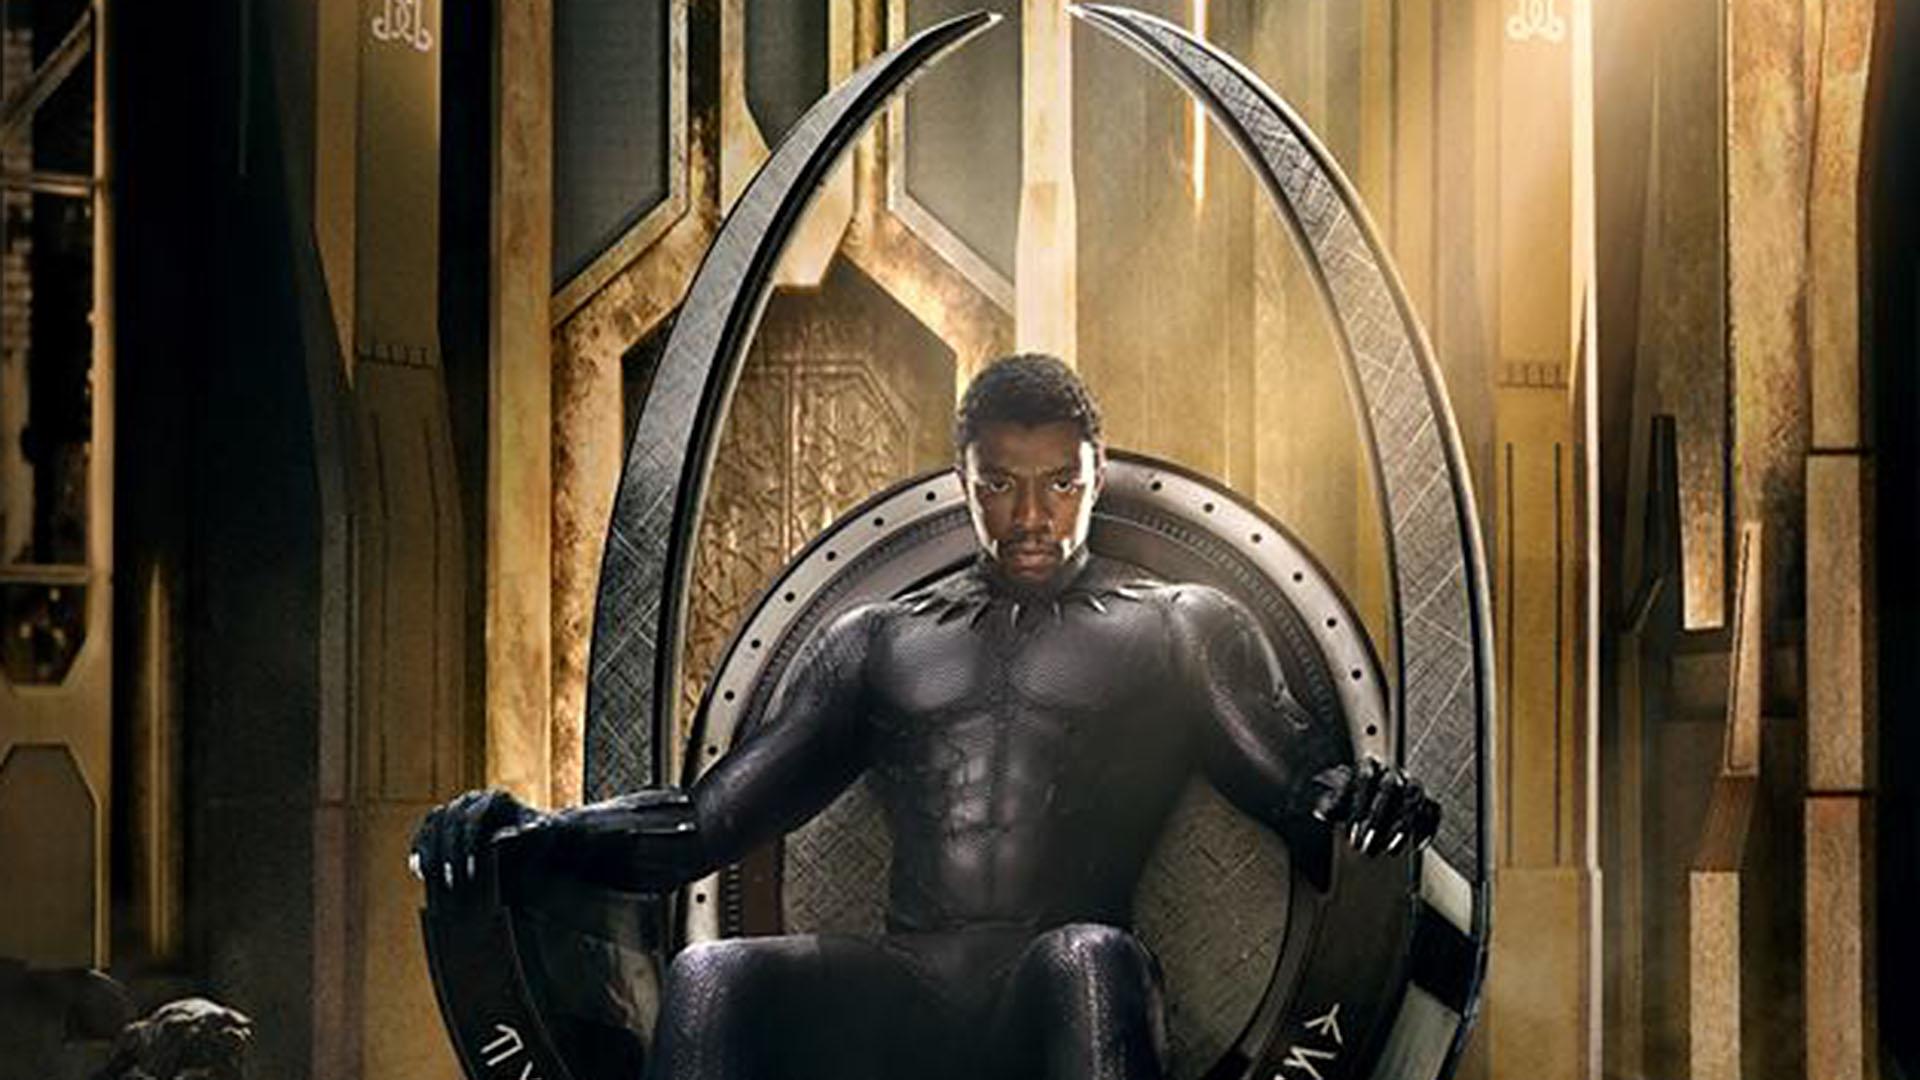 Awe Inspiring Man Wants To Send Kids To Black Panther For A Great Reason Bralicious Painted Fabric Chair Ideas Braliciousco